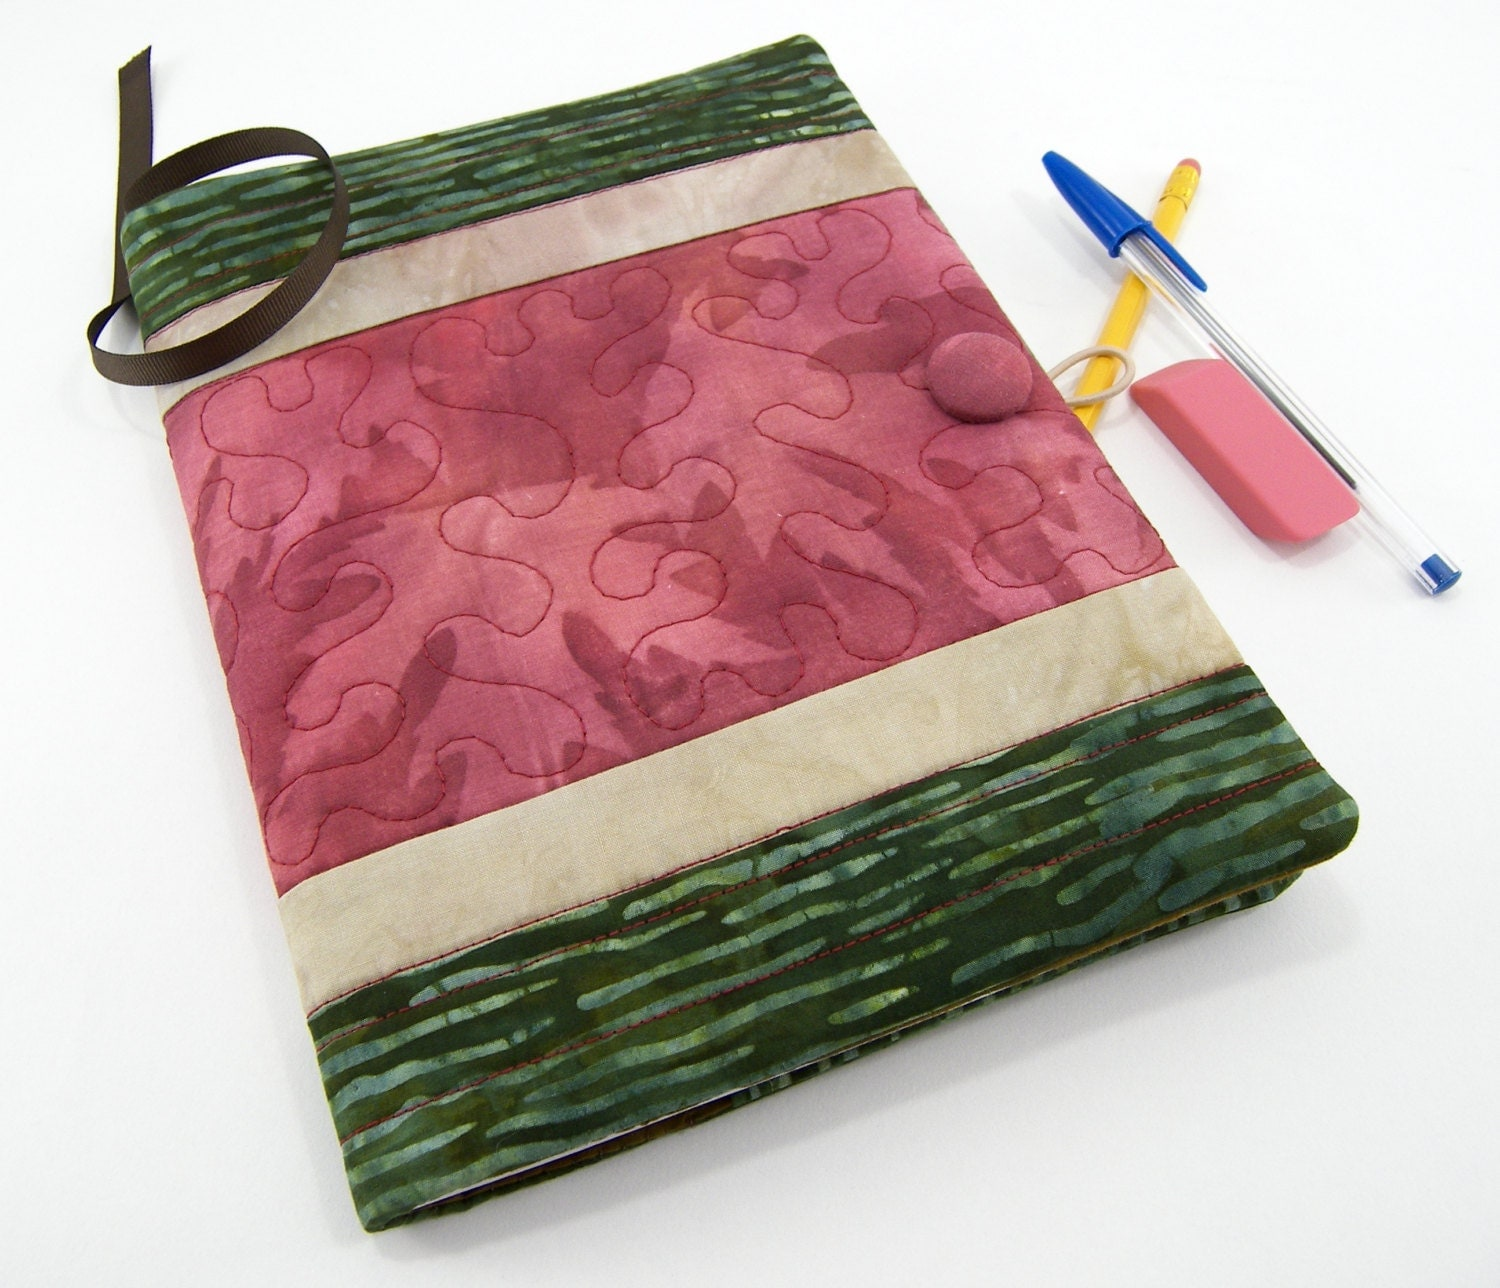 Quilted Composition Book Cover Pattern : Quilted fabric journal composition notebook cover